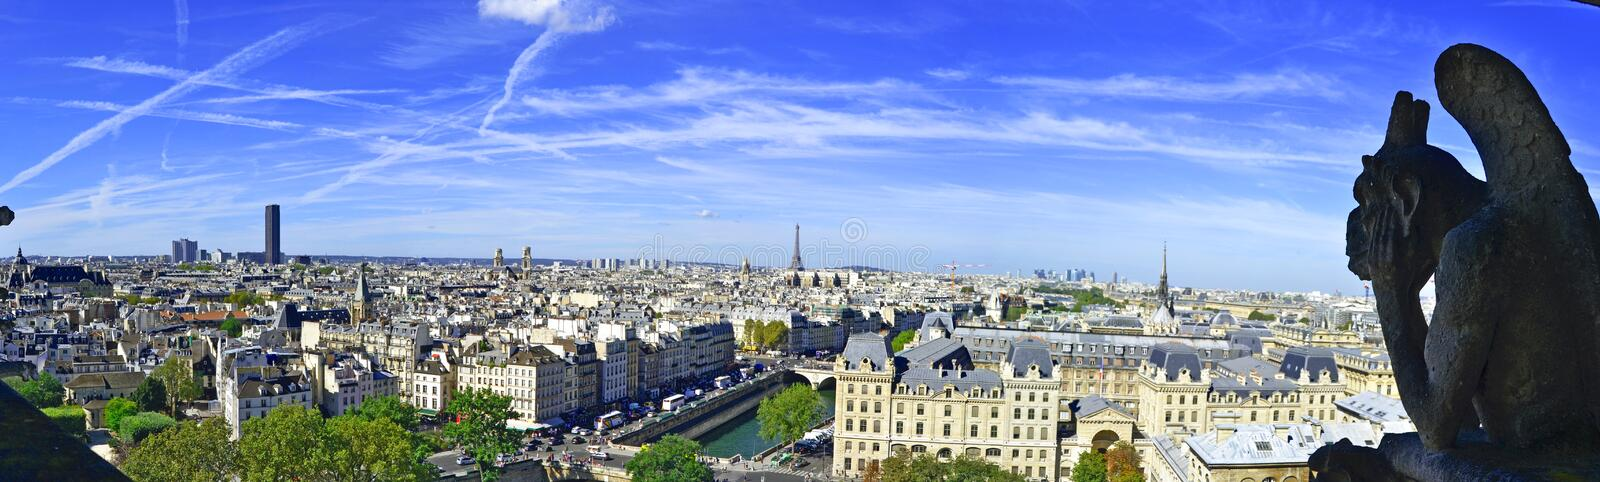 Gargoyle and city view from the roof of Notre Dame de Paris royalty free stock photography